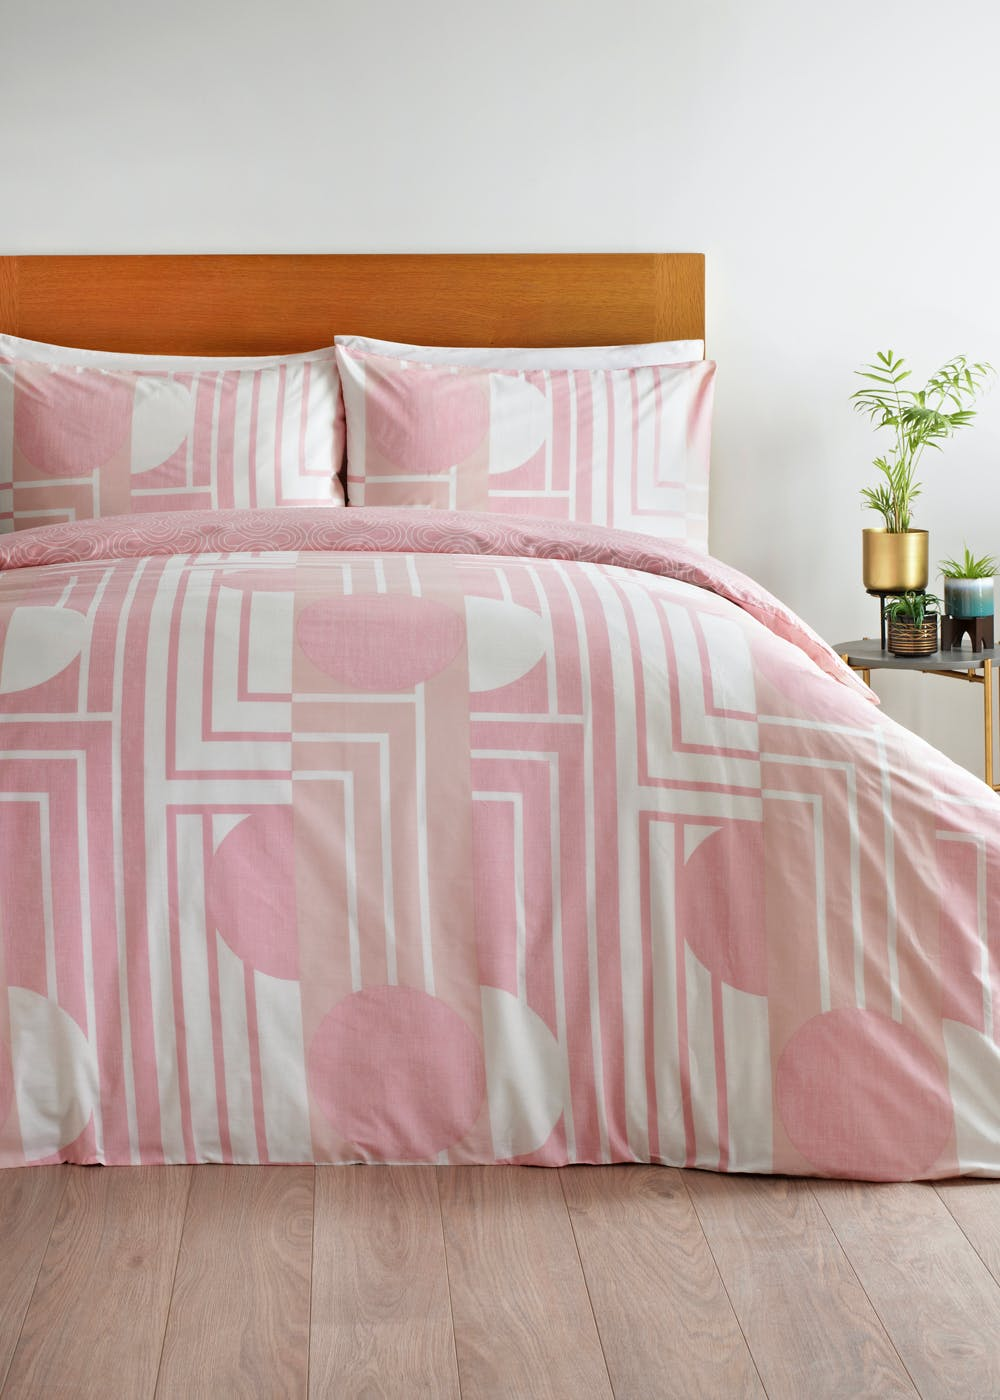 Reversible Retro Geometric Duvet Cover